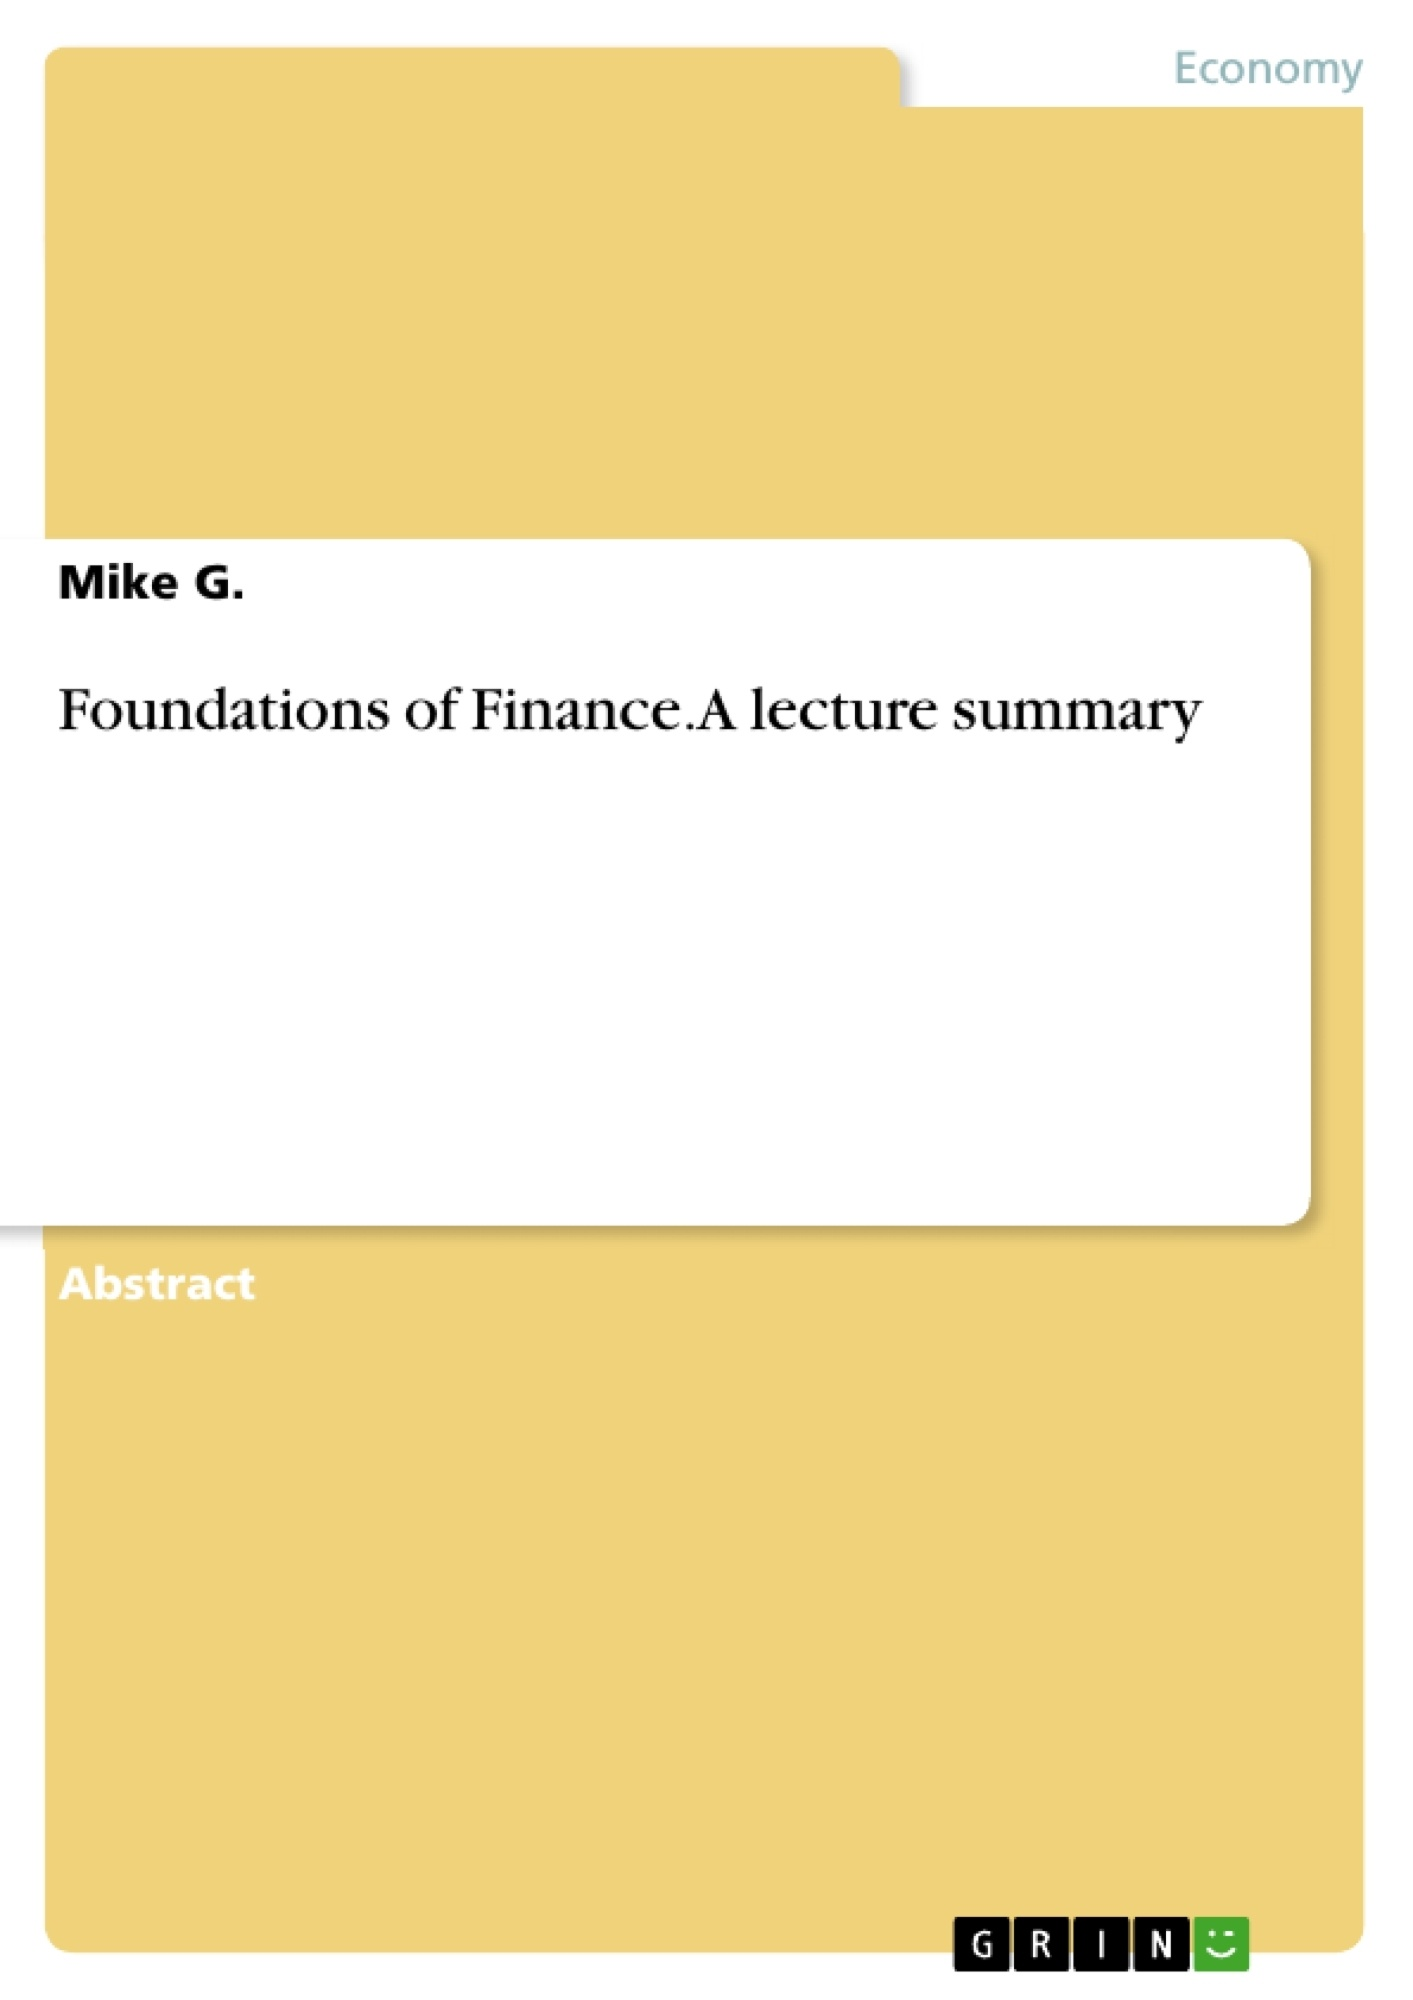 Title: Foundations of Finance. A lecture summary